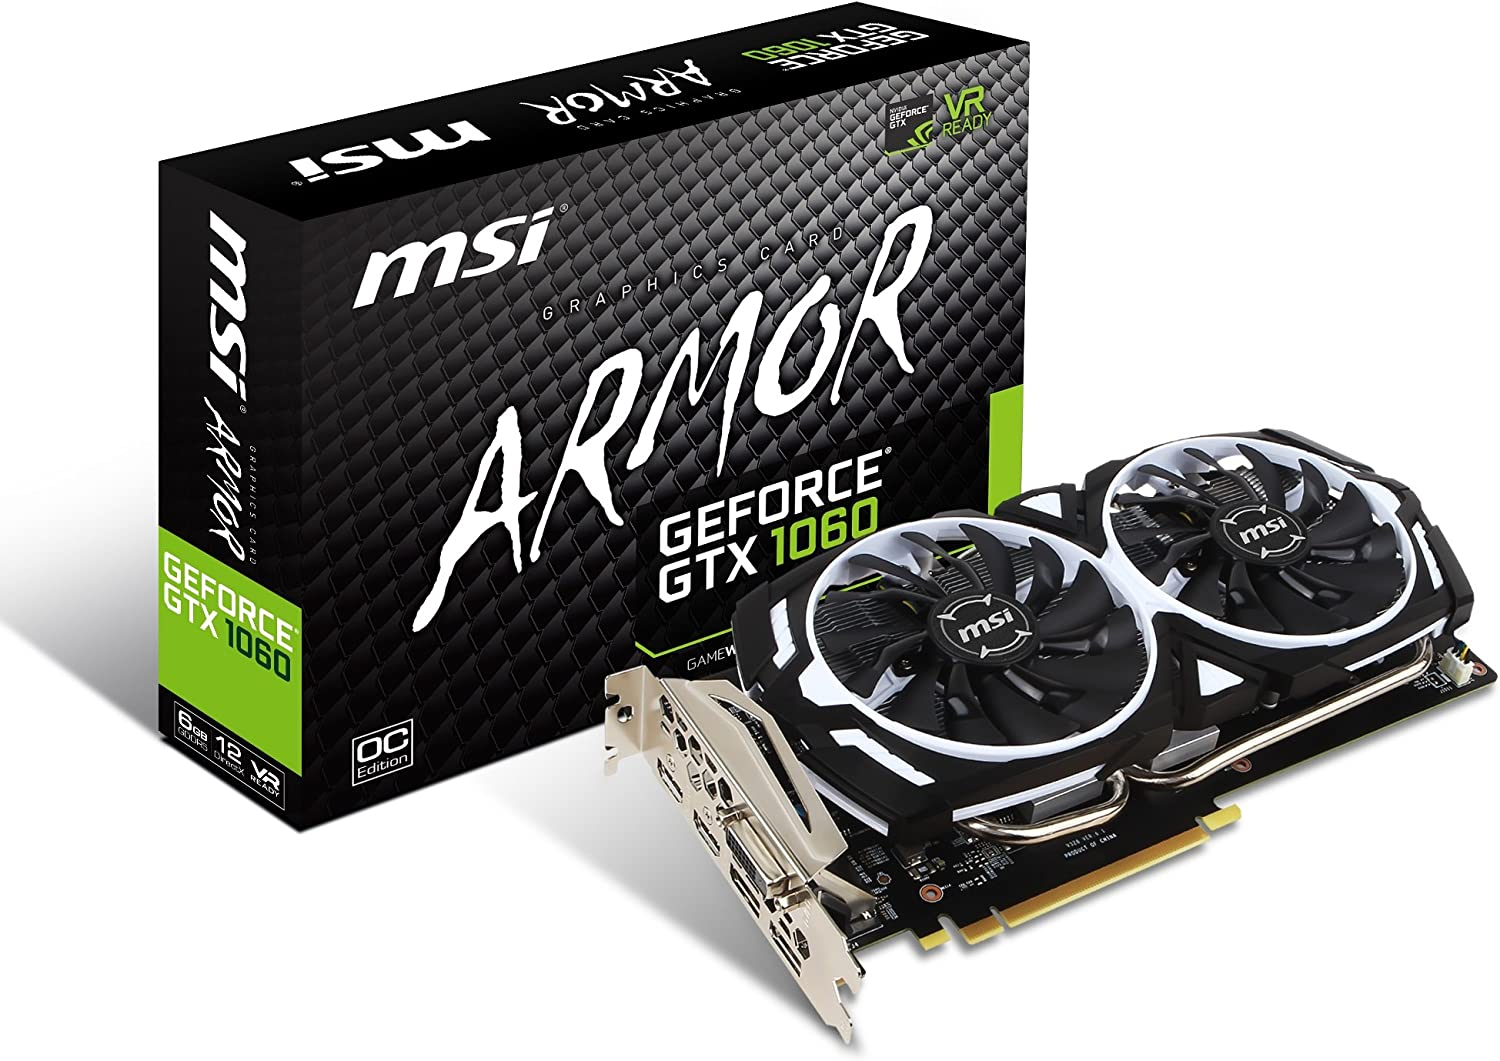 MSI GAMING GeForce GTX 1060 6GB GDRR5 192-bit HDCP Support DirectX 12 Dual Fan VR Ready OC Graphics Card (GTX 1060 ARMOR 6G OCV1)